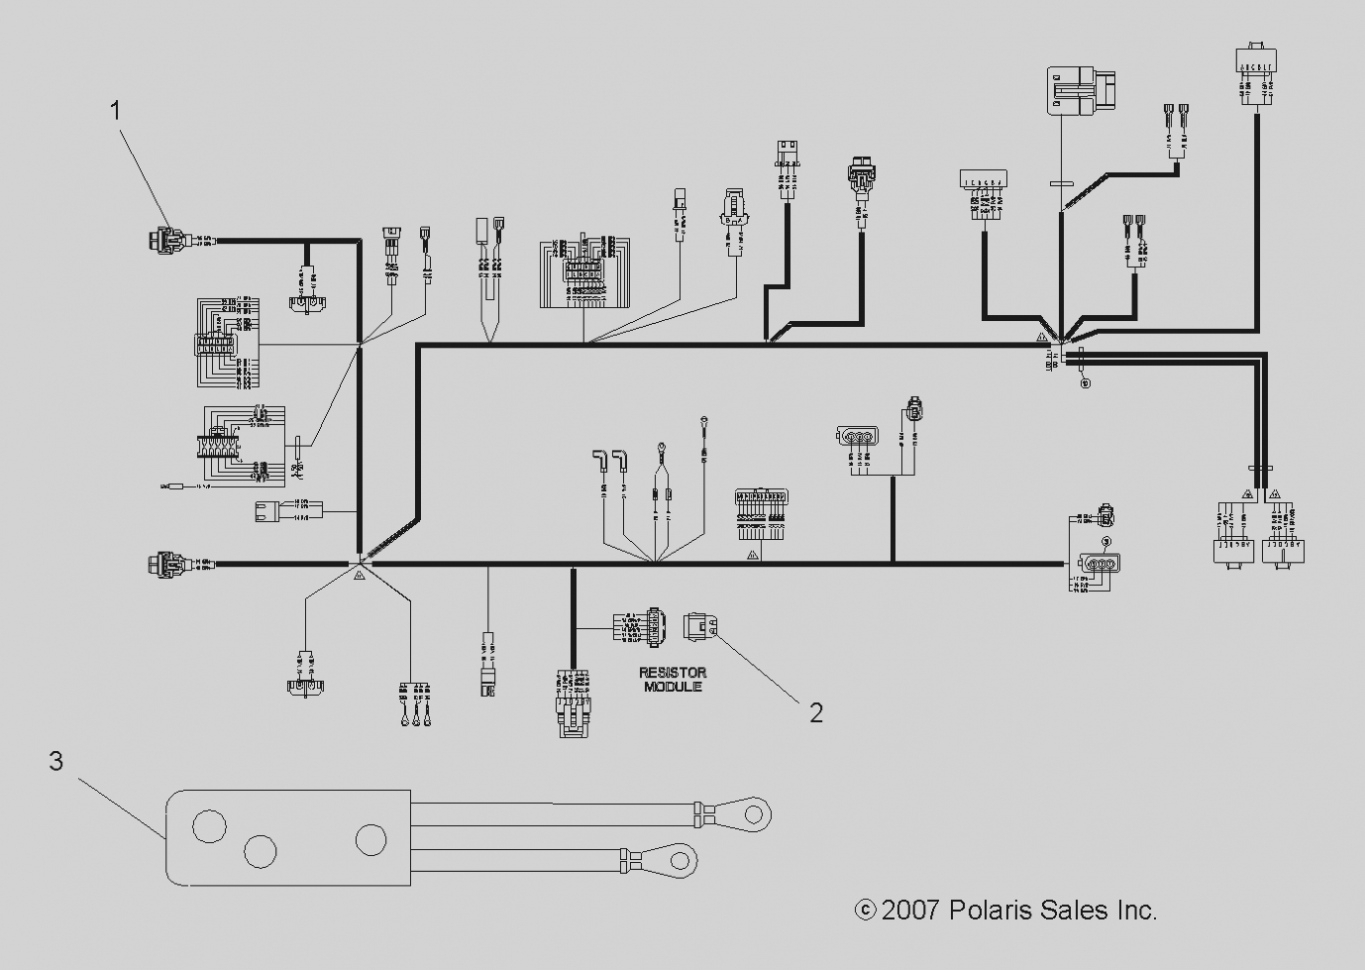 Polaris Ranger 570 Efi Wiring Diagram